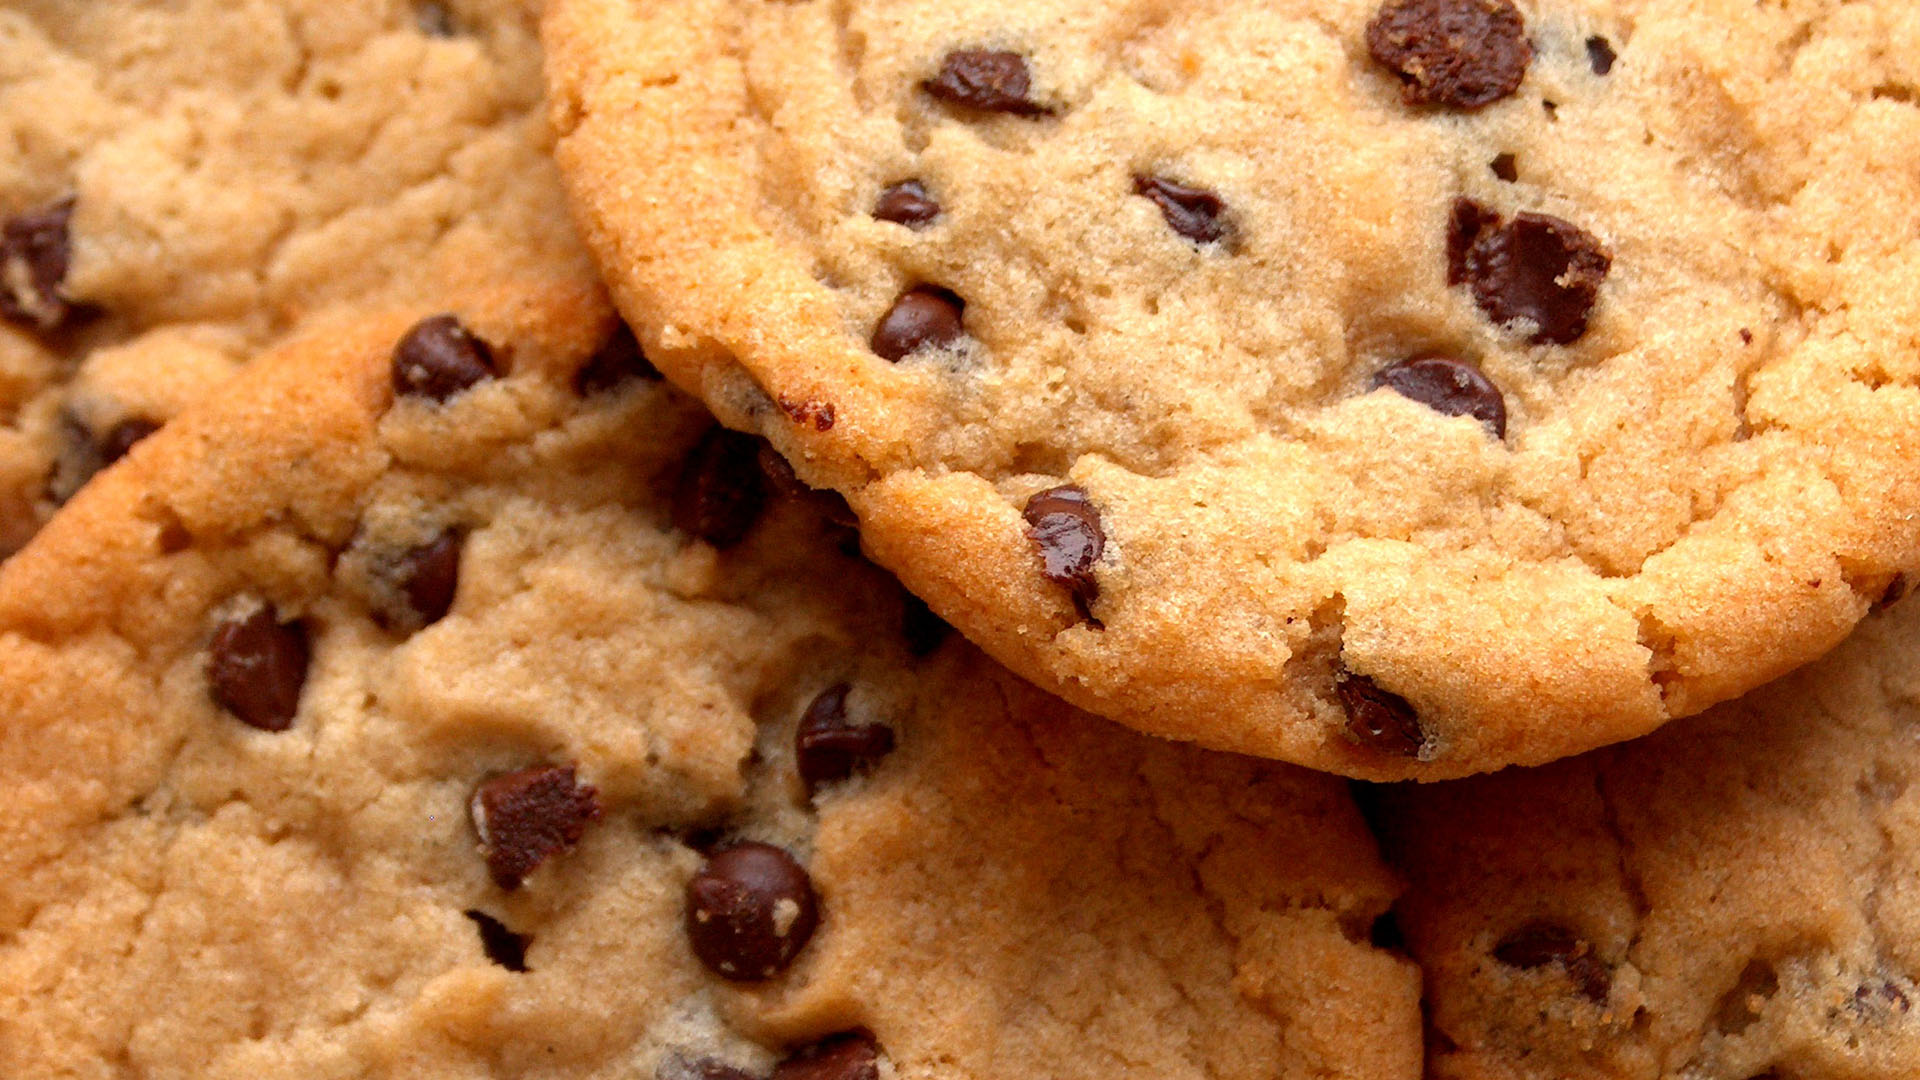 Chocolate Chip Cookies HD Wallpaper FullHDWpp   Full HD Wallpapers 1920x1080